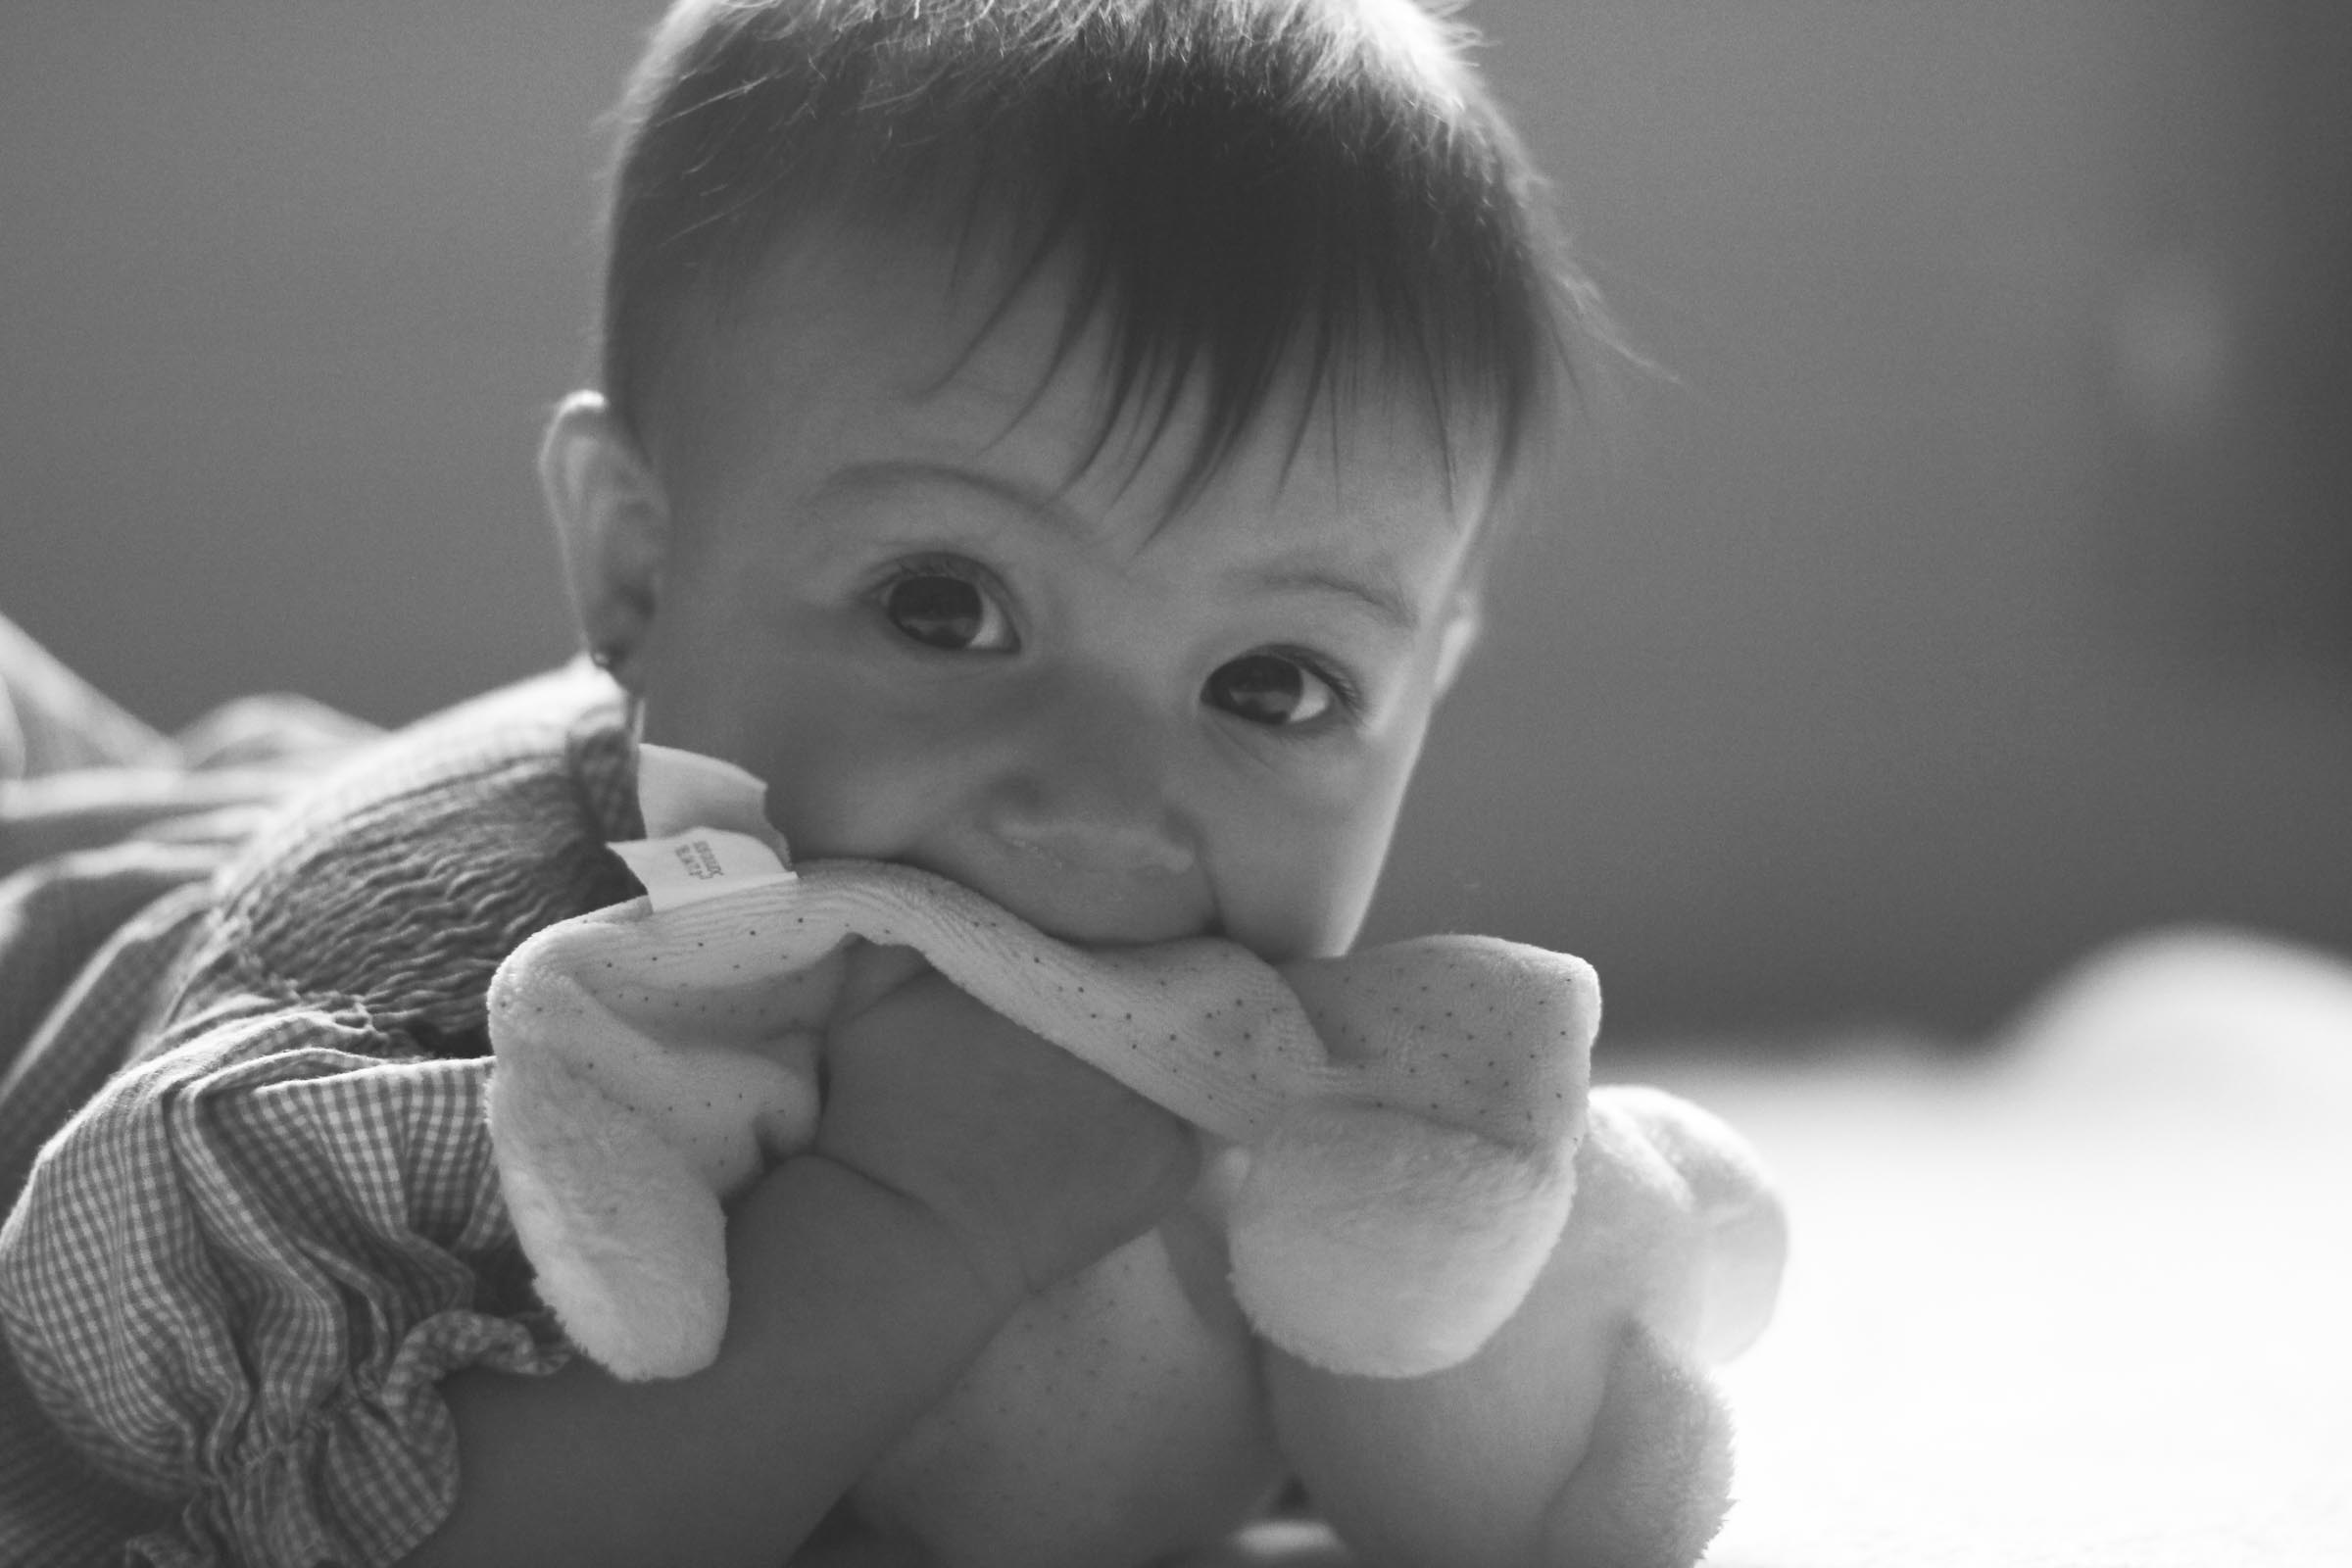 ashley-landry-photography-raymond-09-2016-11-of-41